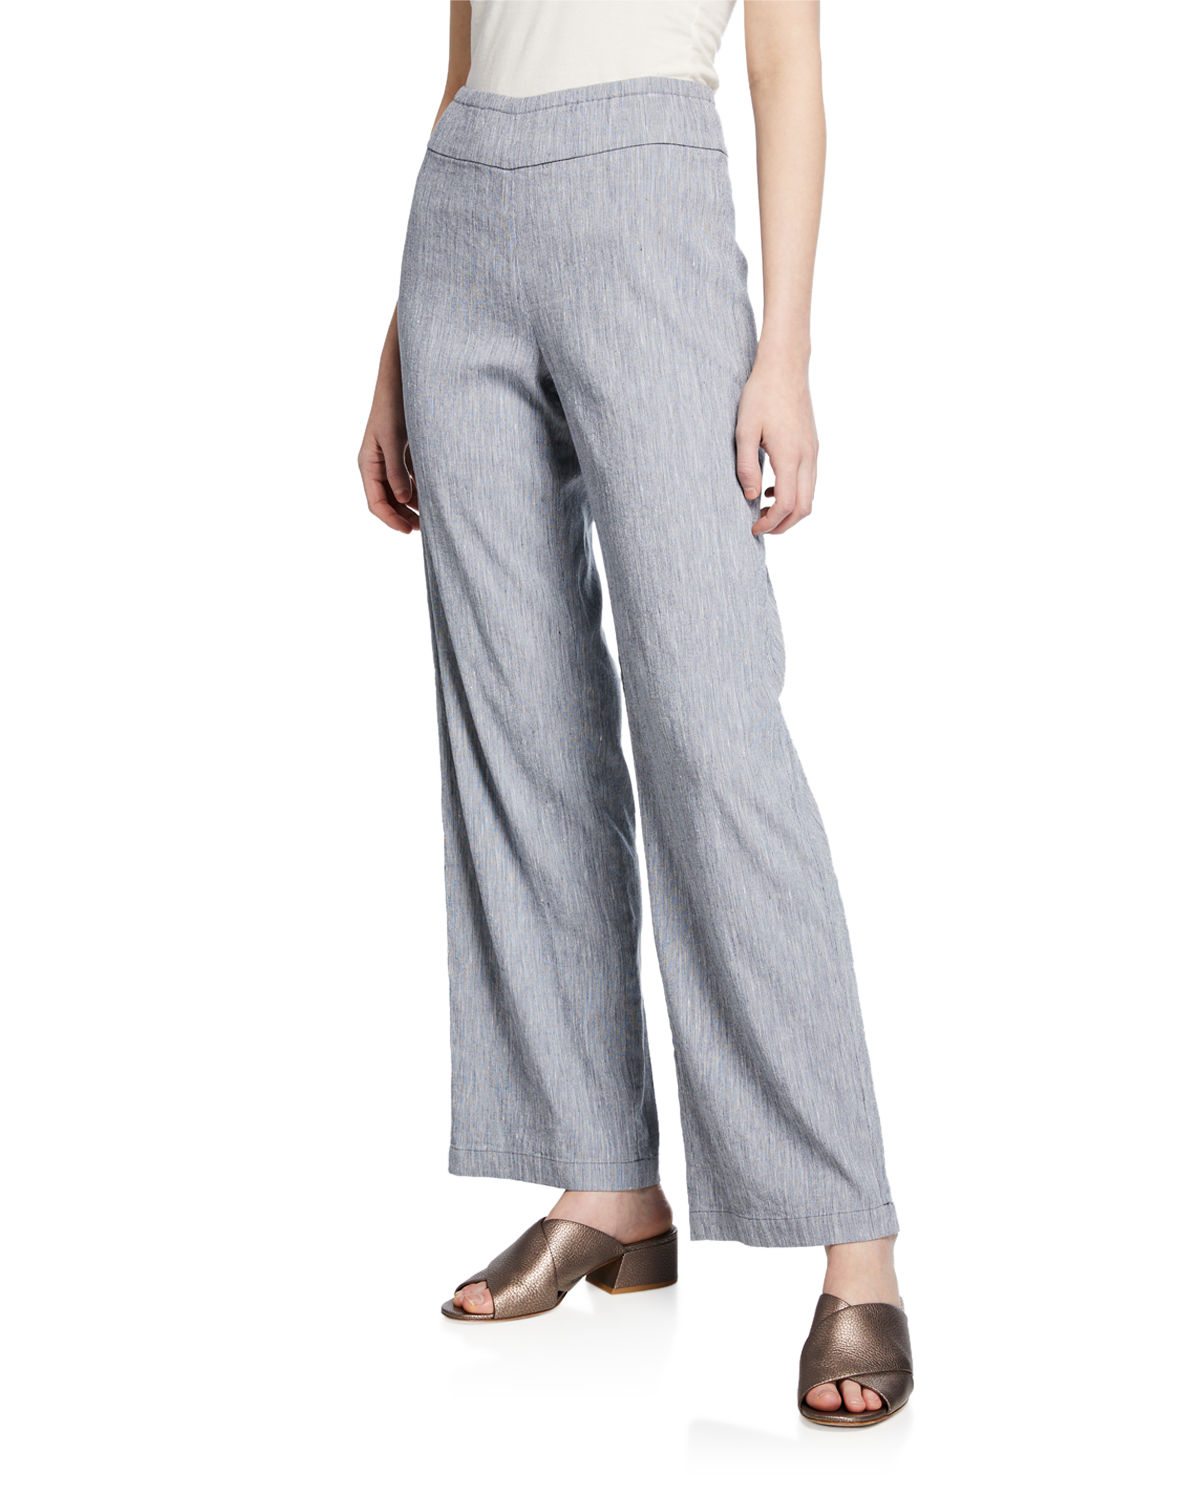 Nic+zoe Pants HERE OR THERE MID-RISE PULL-ON PANTS